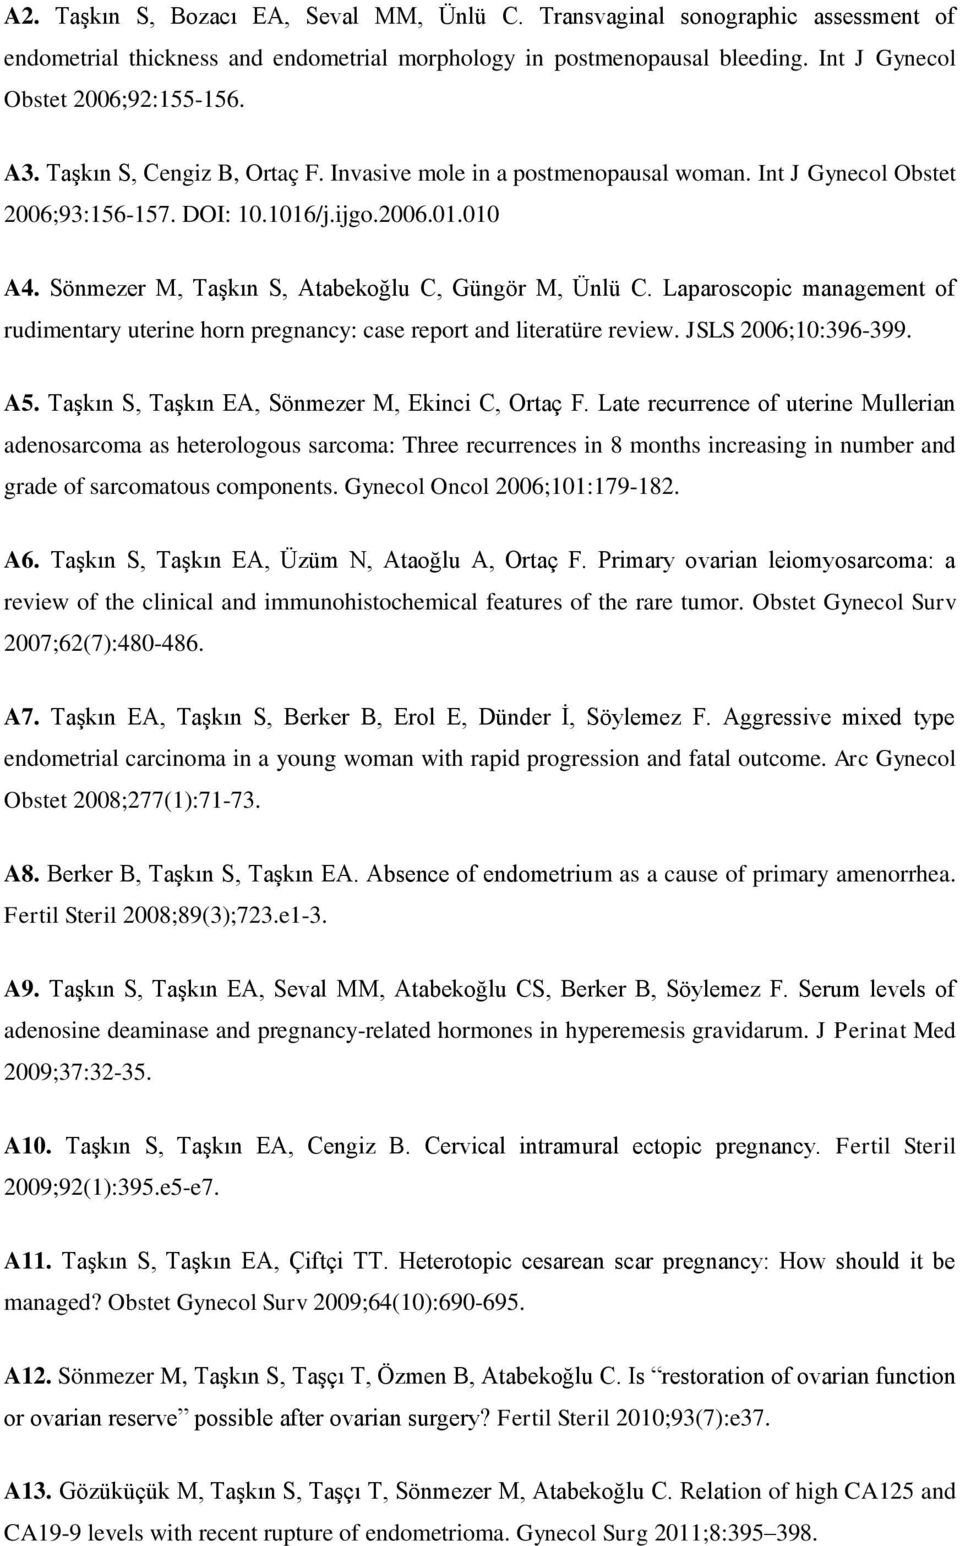 Laparoscopic management of rudimentary uterine horn pregnancy: case report and literatüre review. JSLS 2006;10:396-399. A5. Taşkın S, Taşkın EA, Sönmezer M, Ekinci C, Ortaç F.